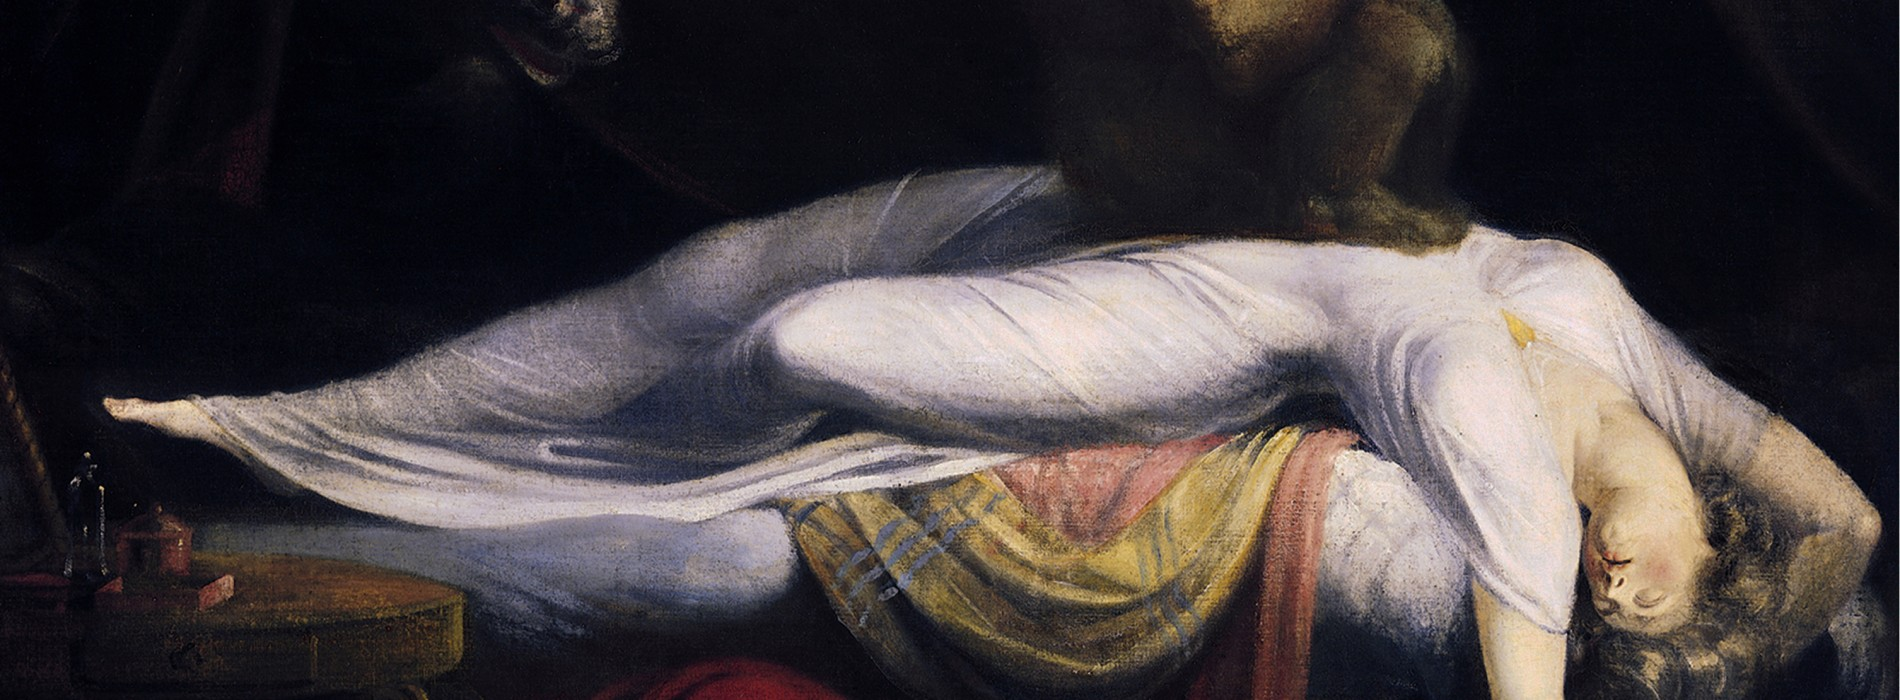 Ever Suffer From Creepy Sleep Paralysis? Then Science Wants to Study You